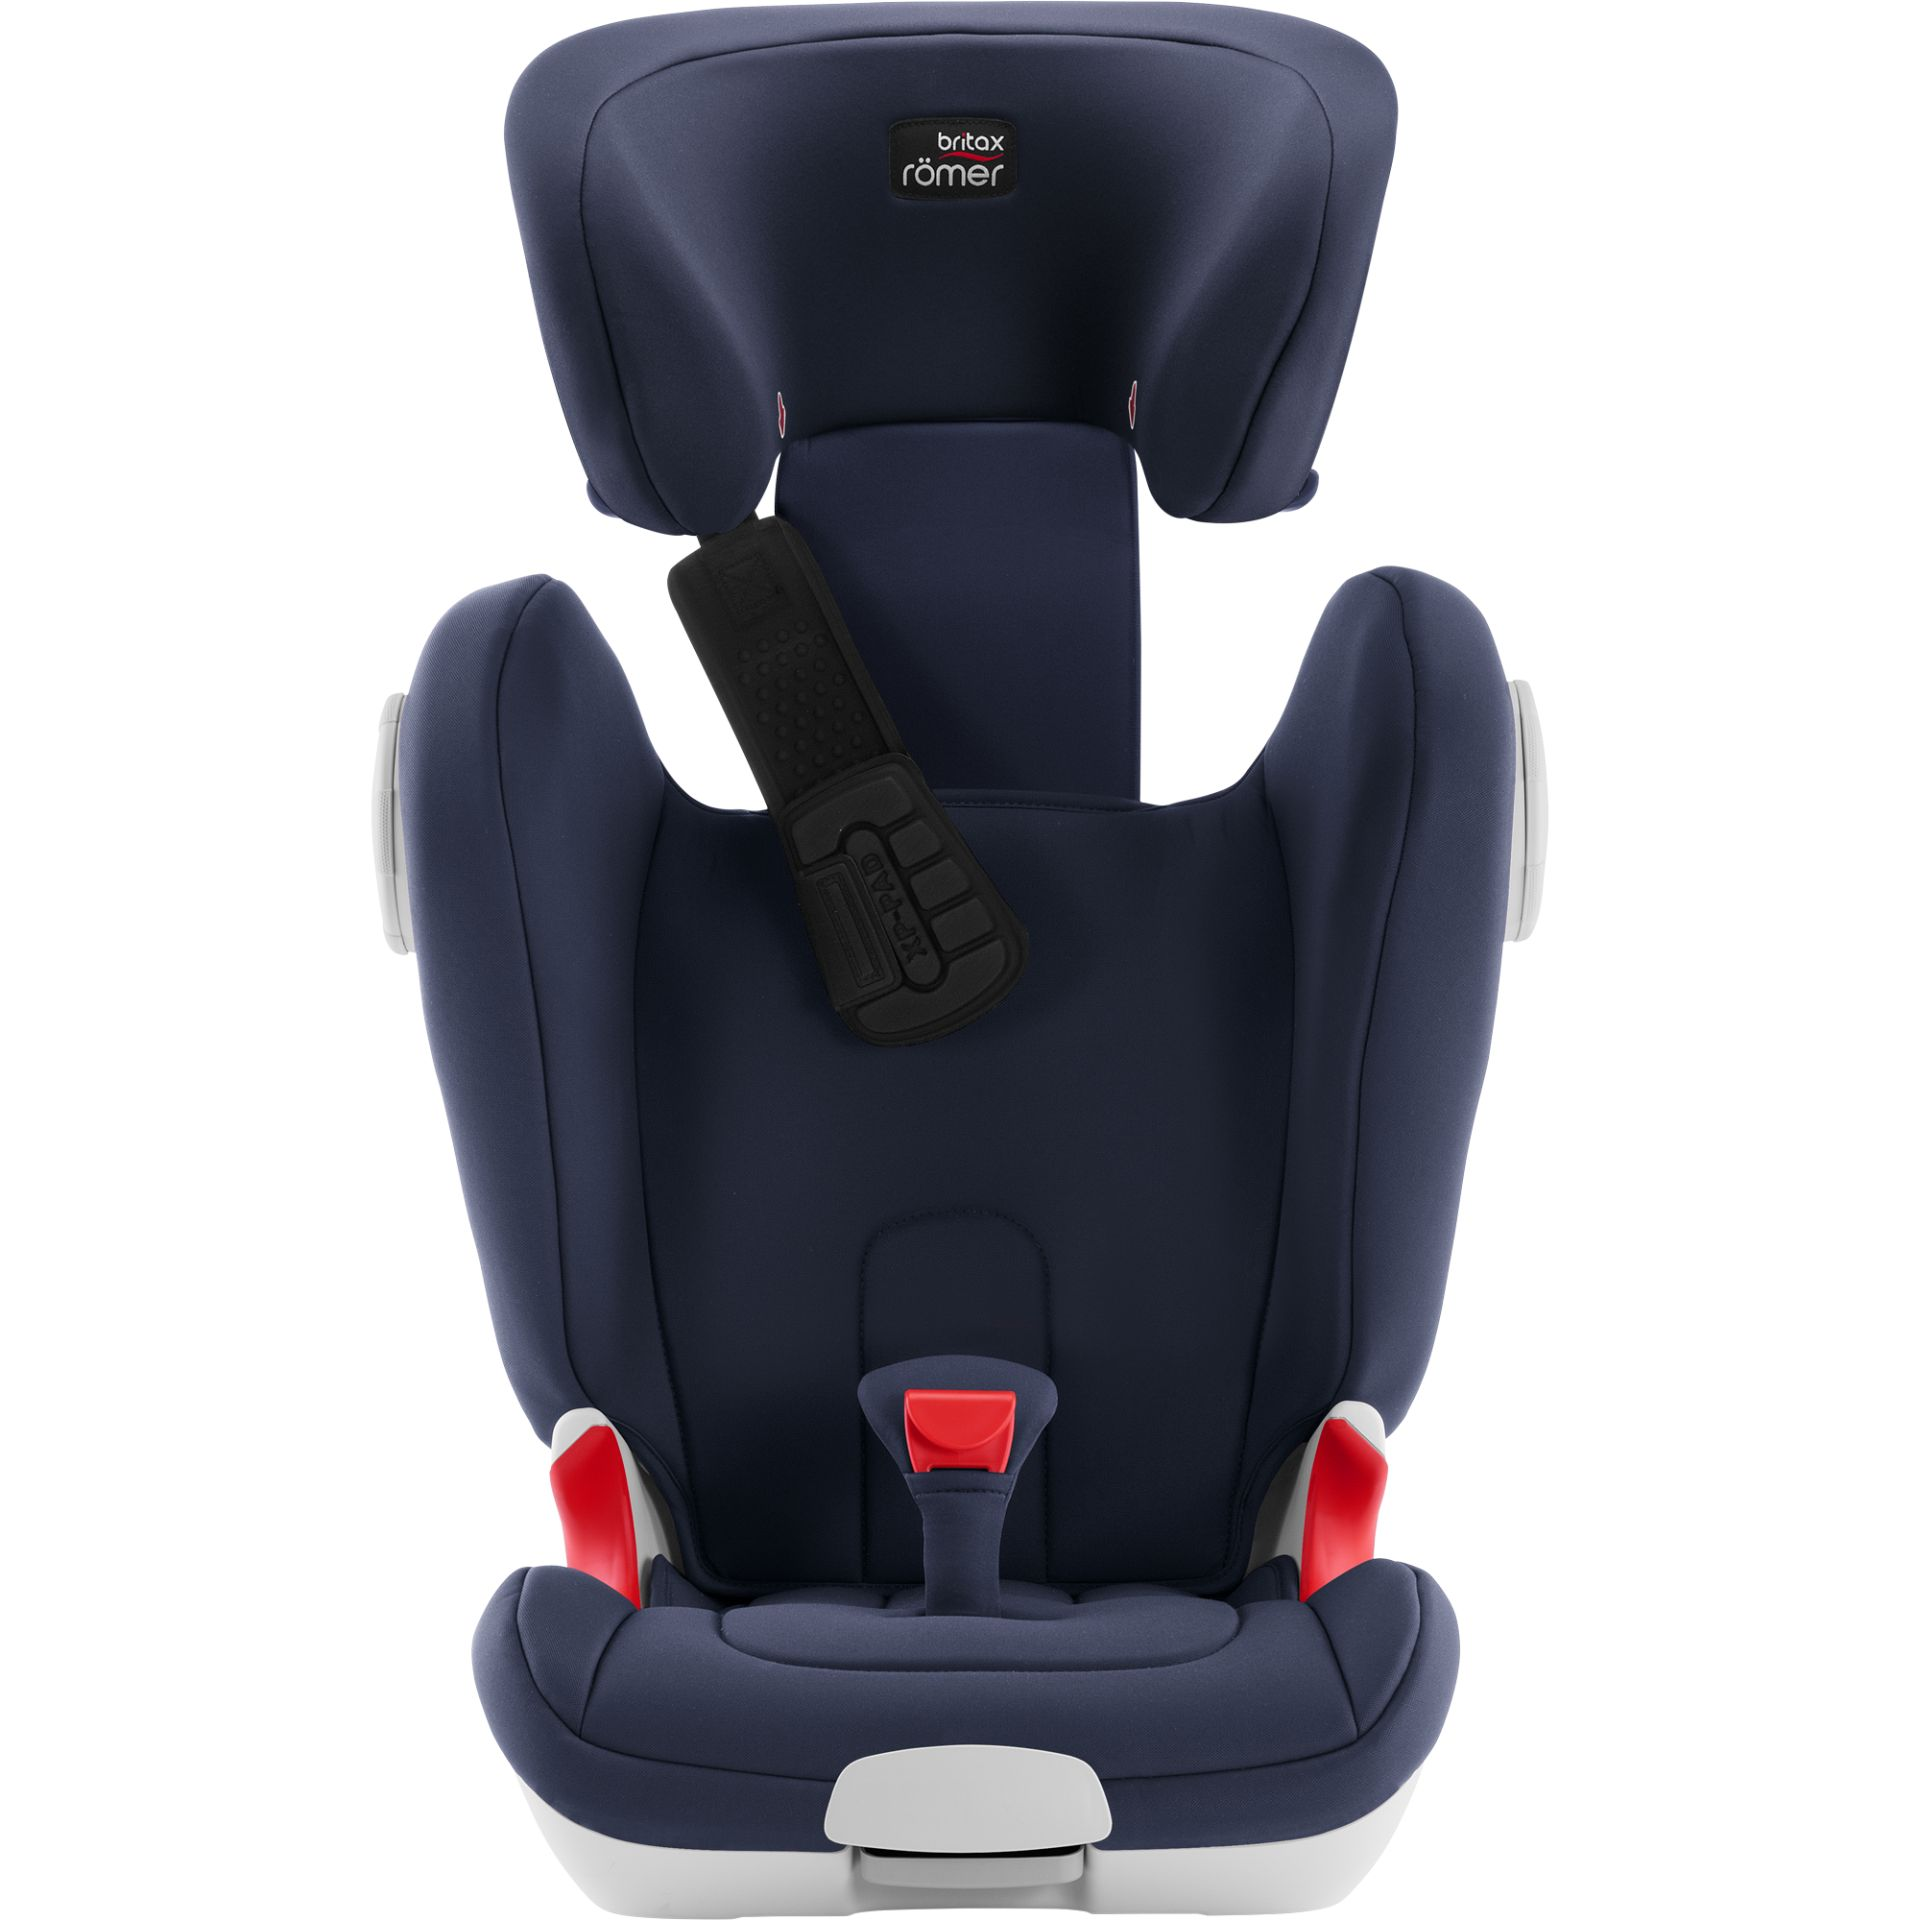 britax r mer child car seat kidfix ii xp sict 2018 moonlight blue buy at kidsroom car seats. Black Bedroom Furniture Sets. Home Design Ideas